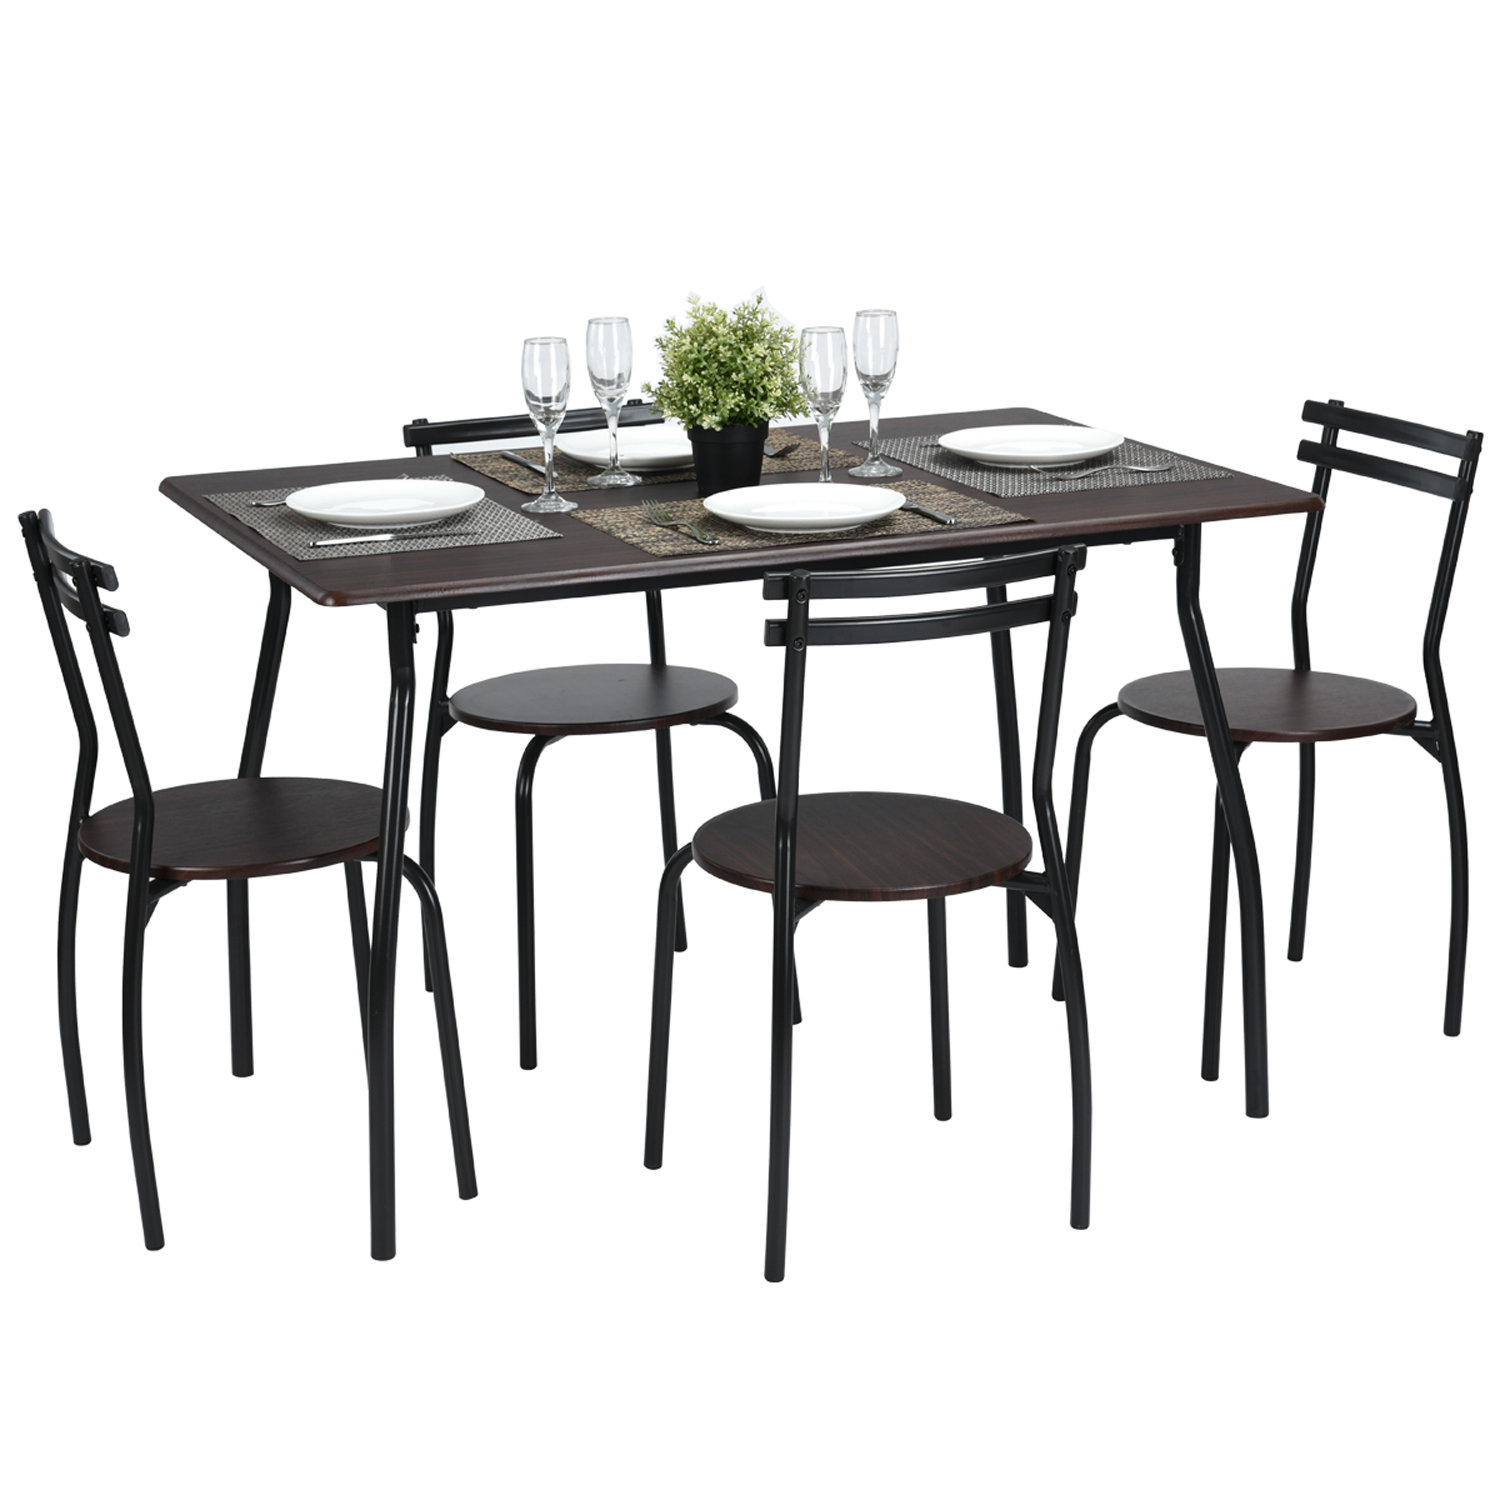 Inspiration about Wayfair With Regard To Reinert 5 Piece Dining Sets (#5 of 20)